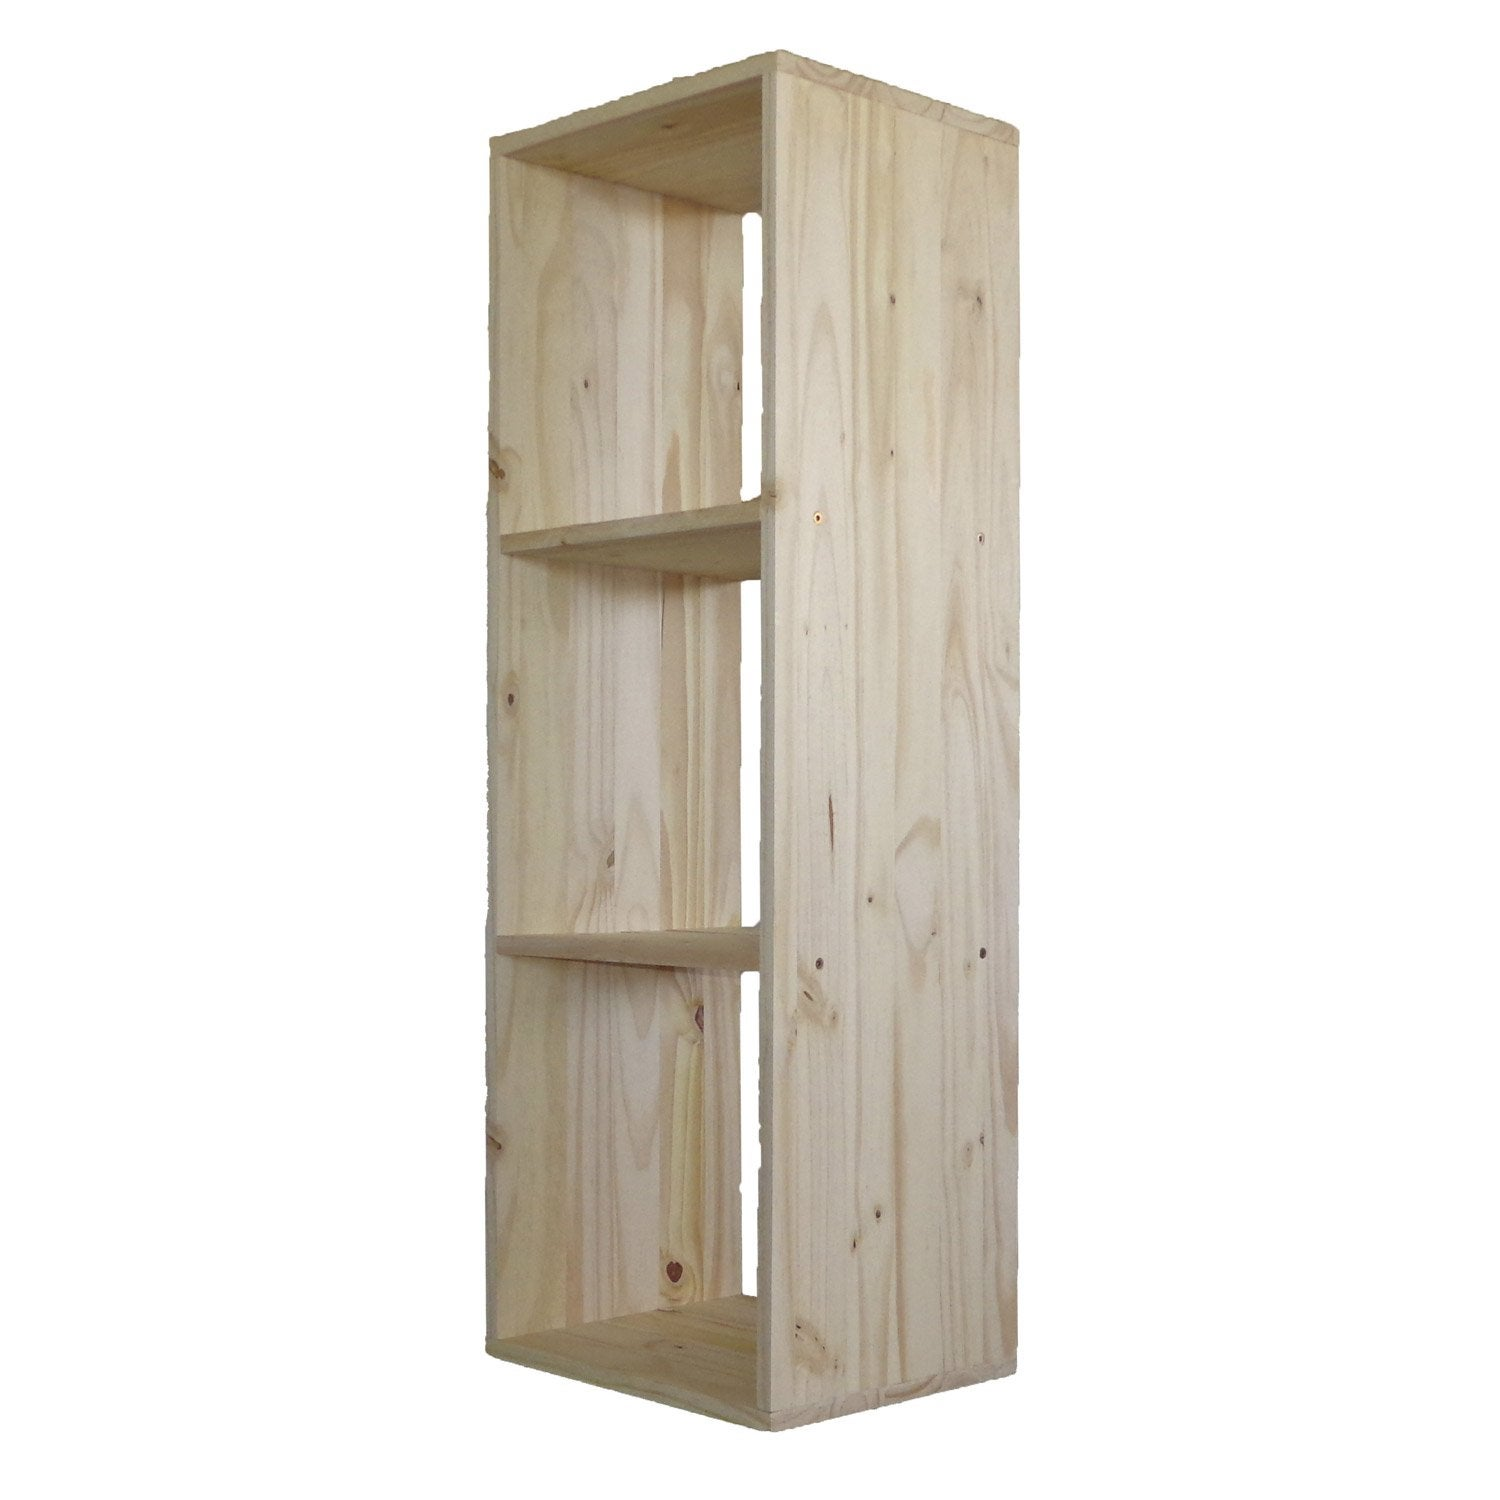 Etag re 3 cases multikaz pin x x cm leroy merlin - Etagere garage leroy merlin ...